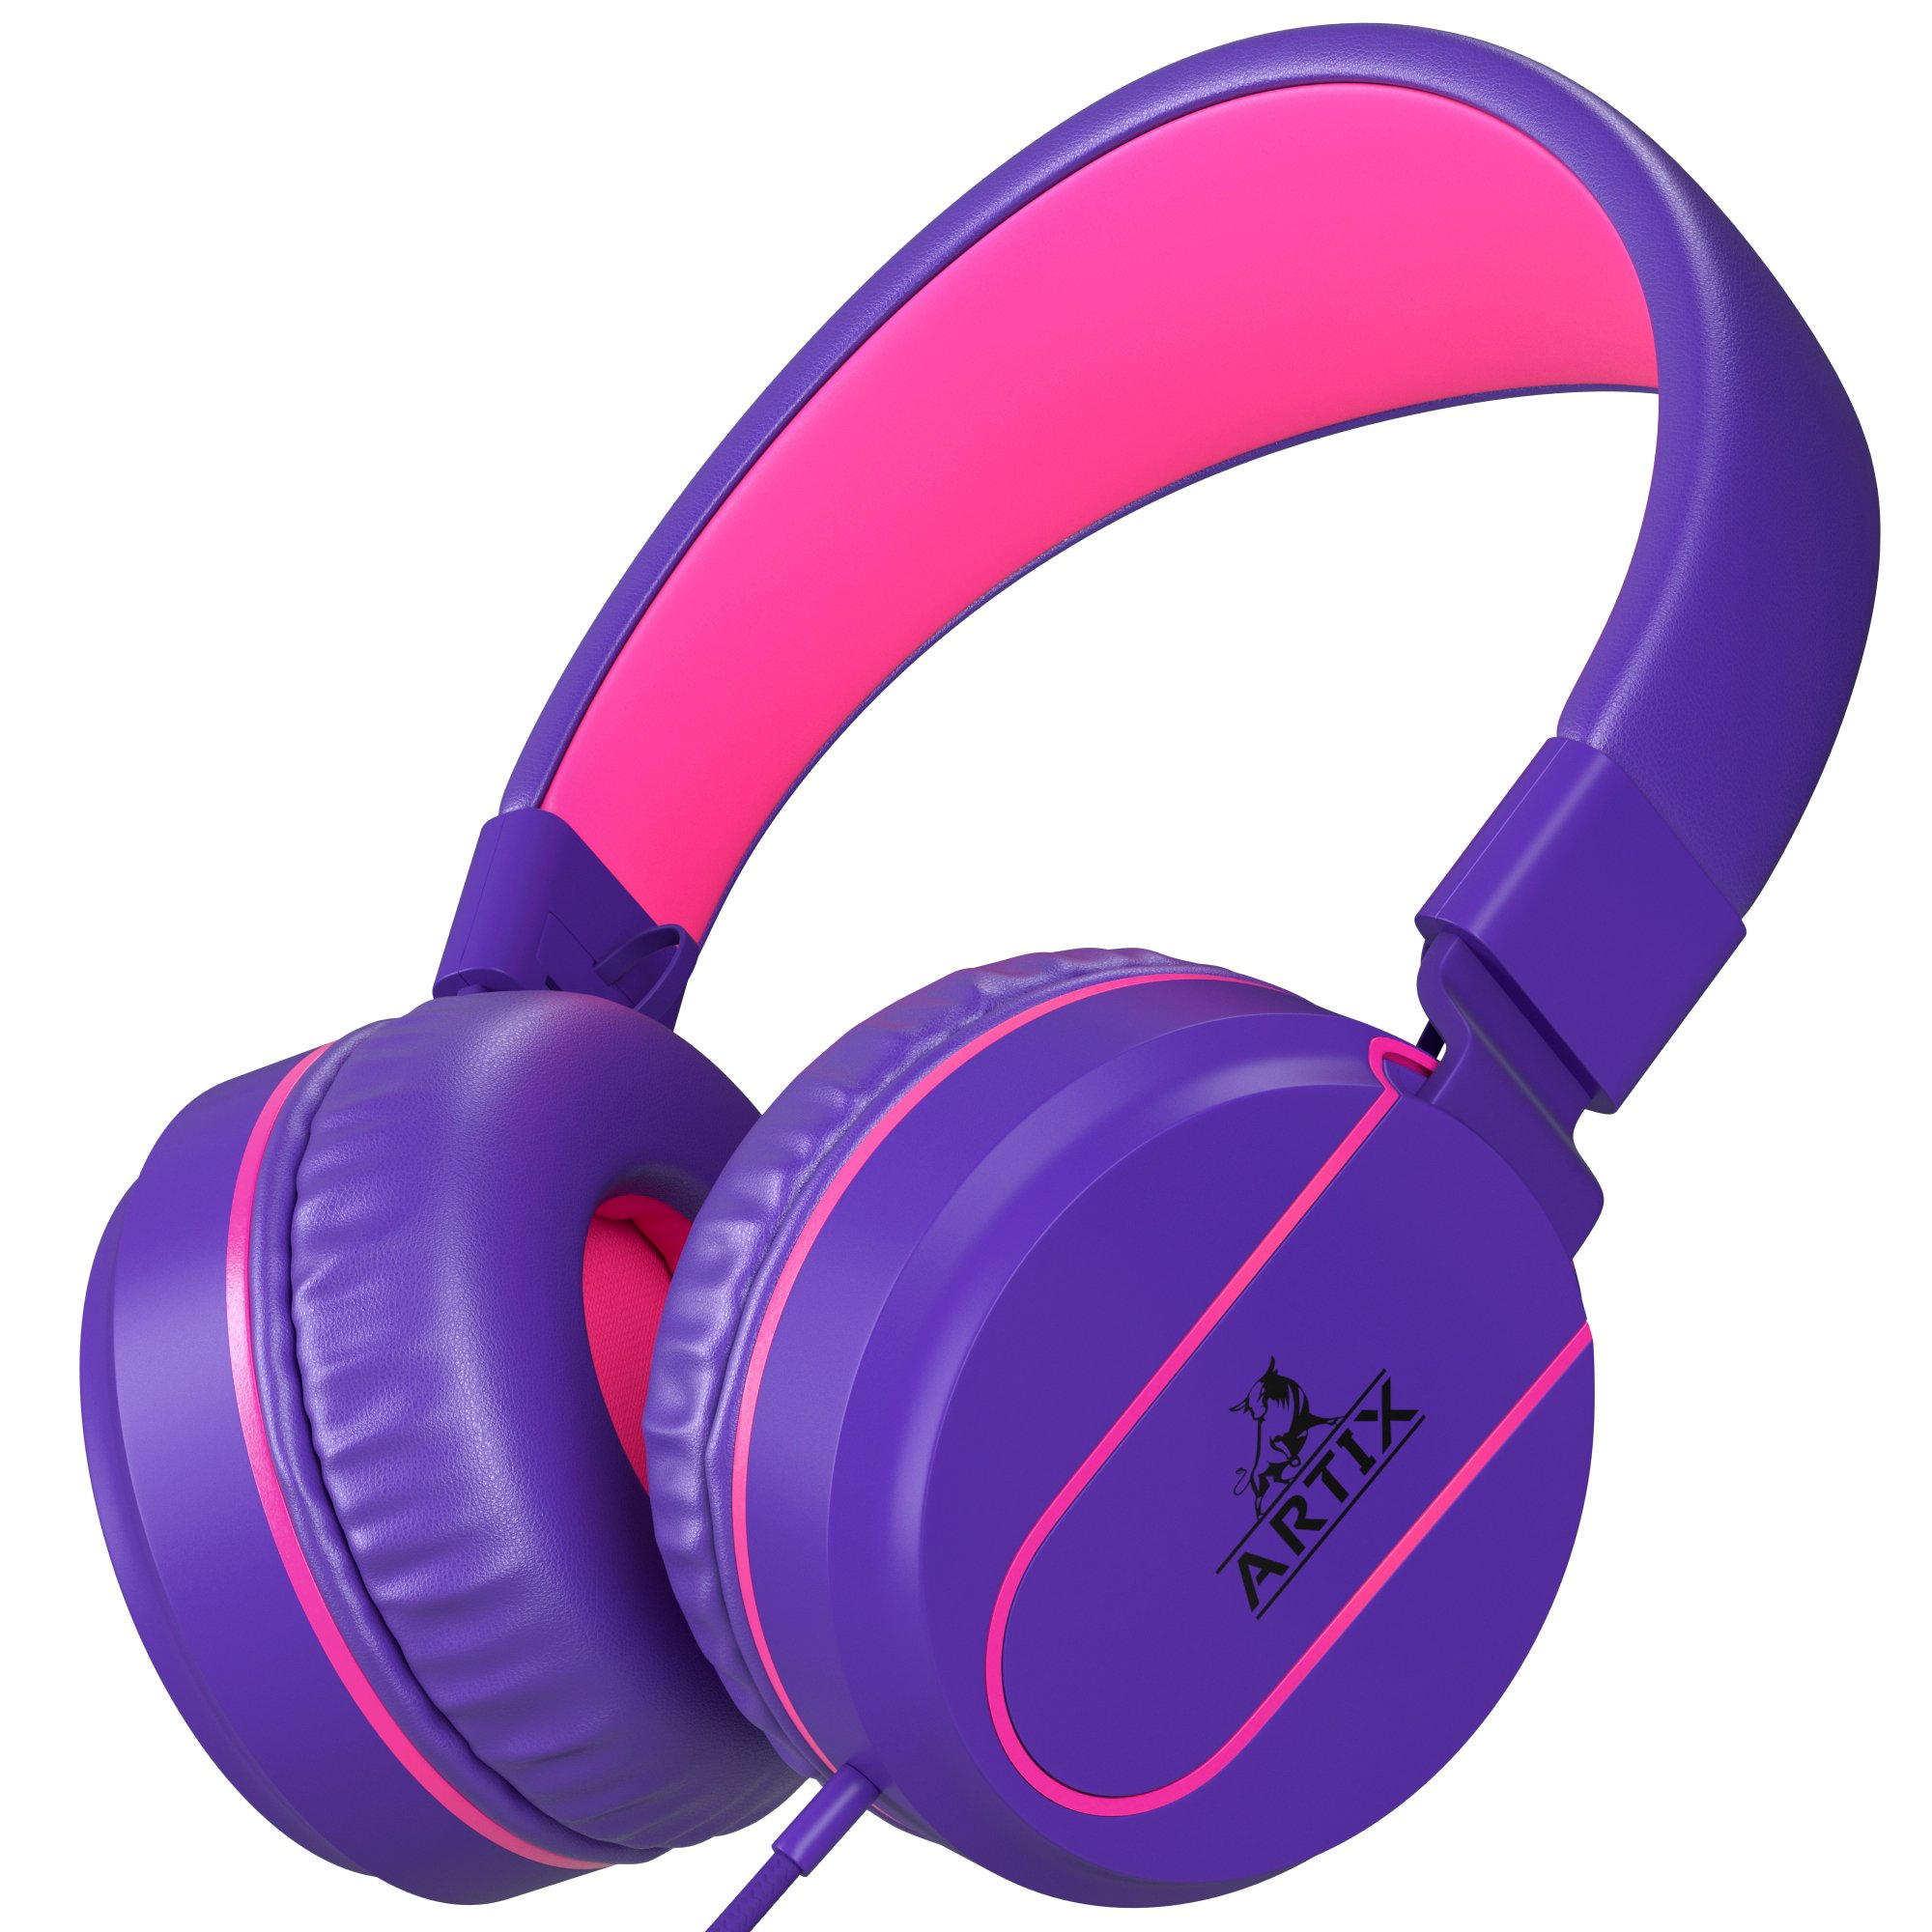 Artix Foldable On-Ear Adjustable Tangle-Free Wired Headphones, Compact Stereo Earphones with In-line Microphone and Controls for Children, Teen, Adult Head Phones for Running Sport, Travel- Purple by ARTIX